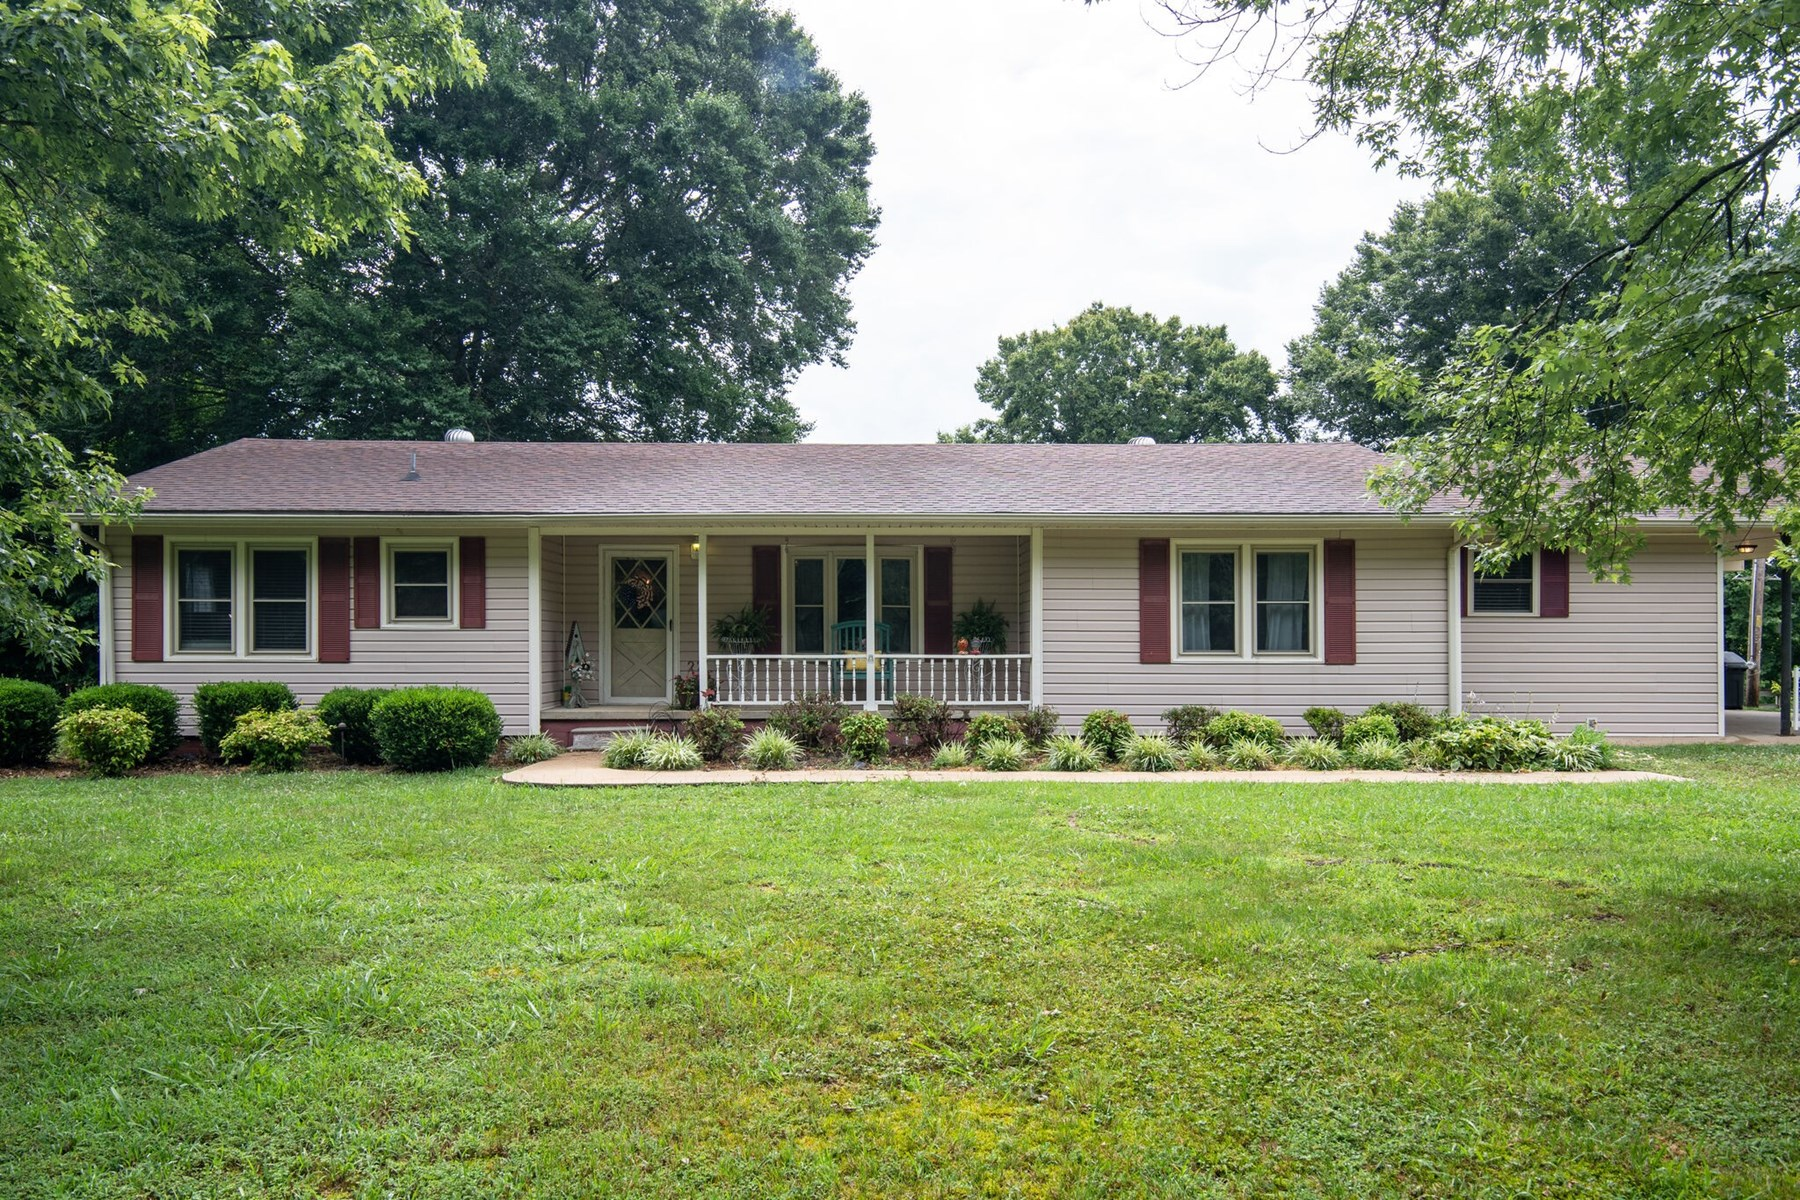 County Ranch Home for Sale in Lewis County, Tennessee